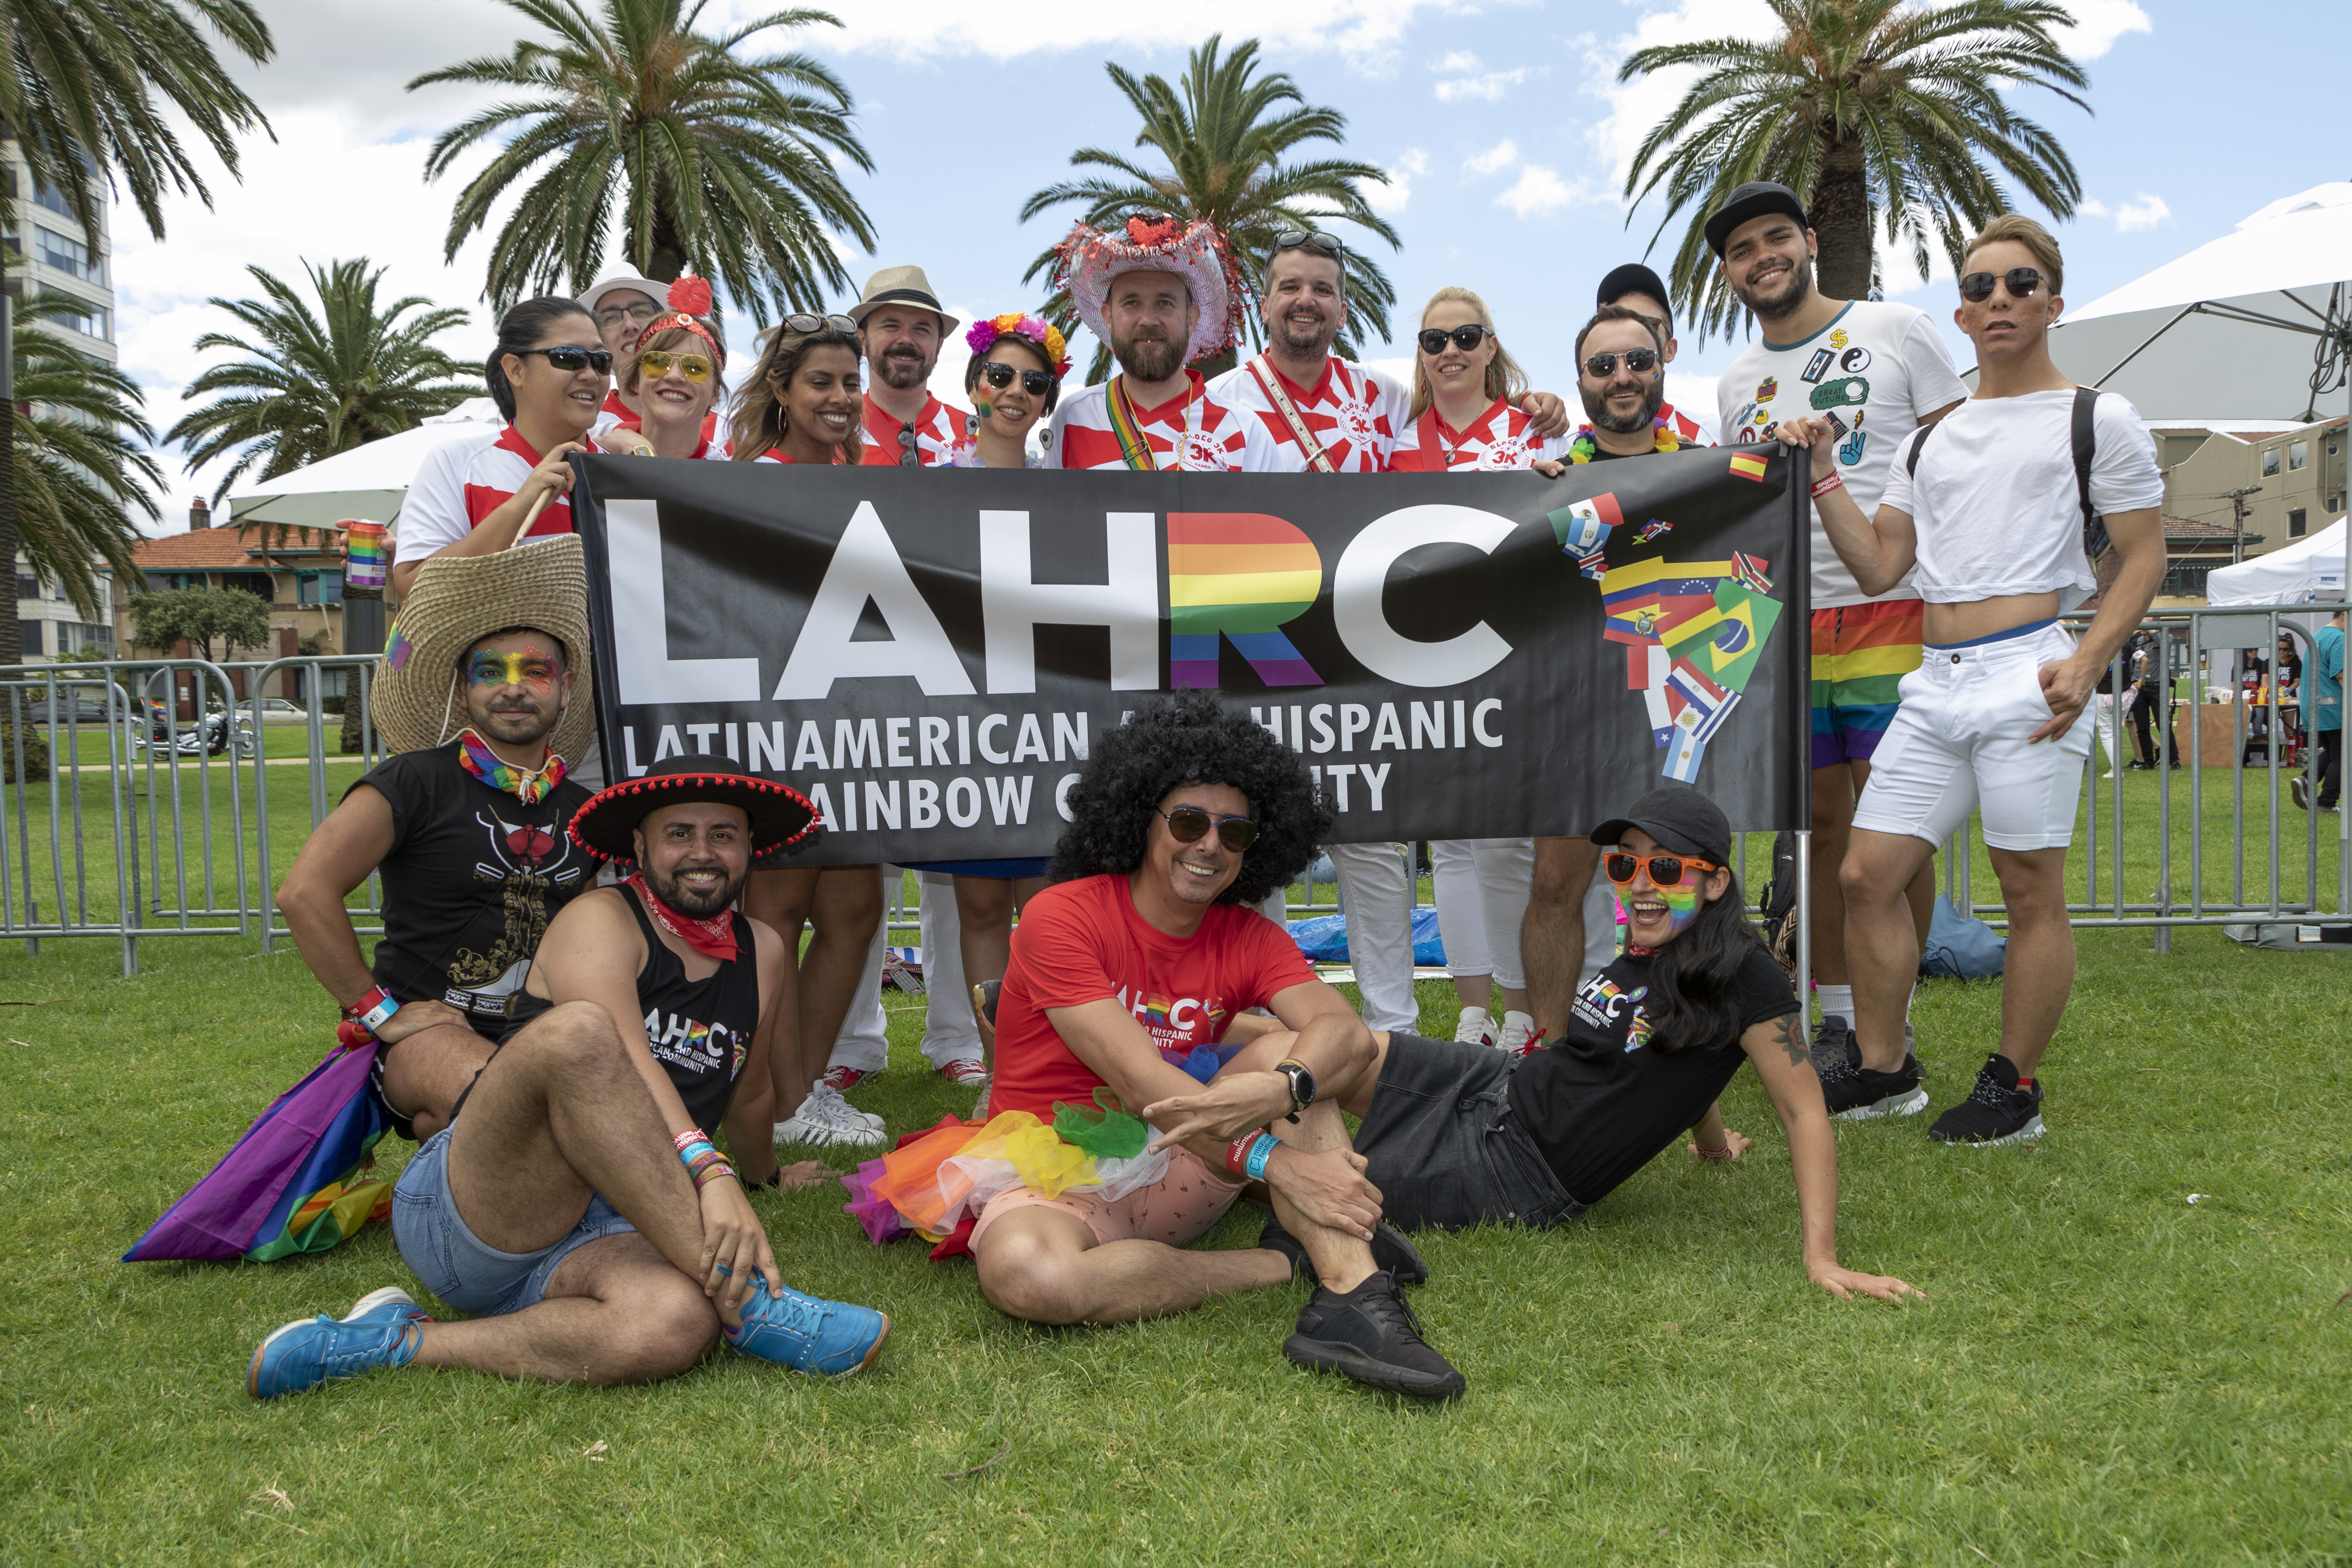 LAHRC at Pride March 2020